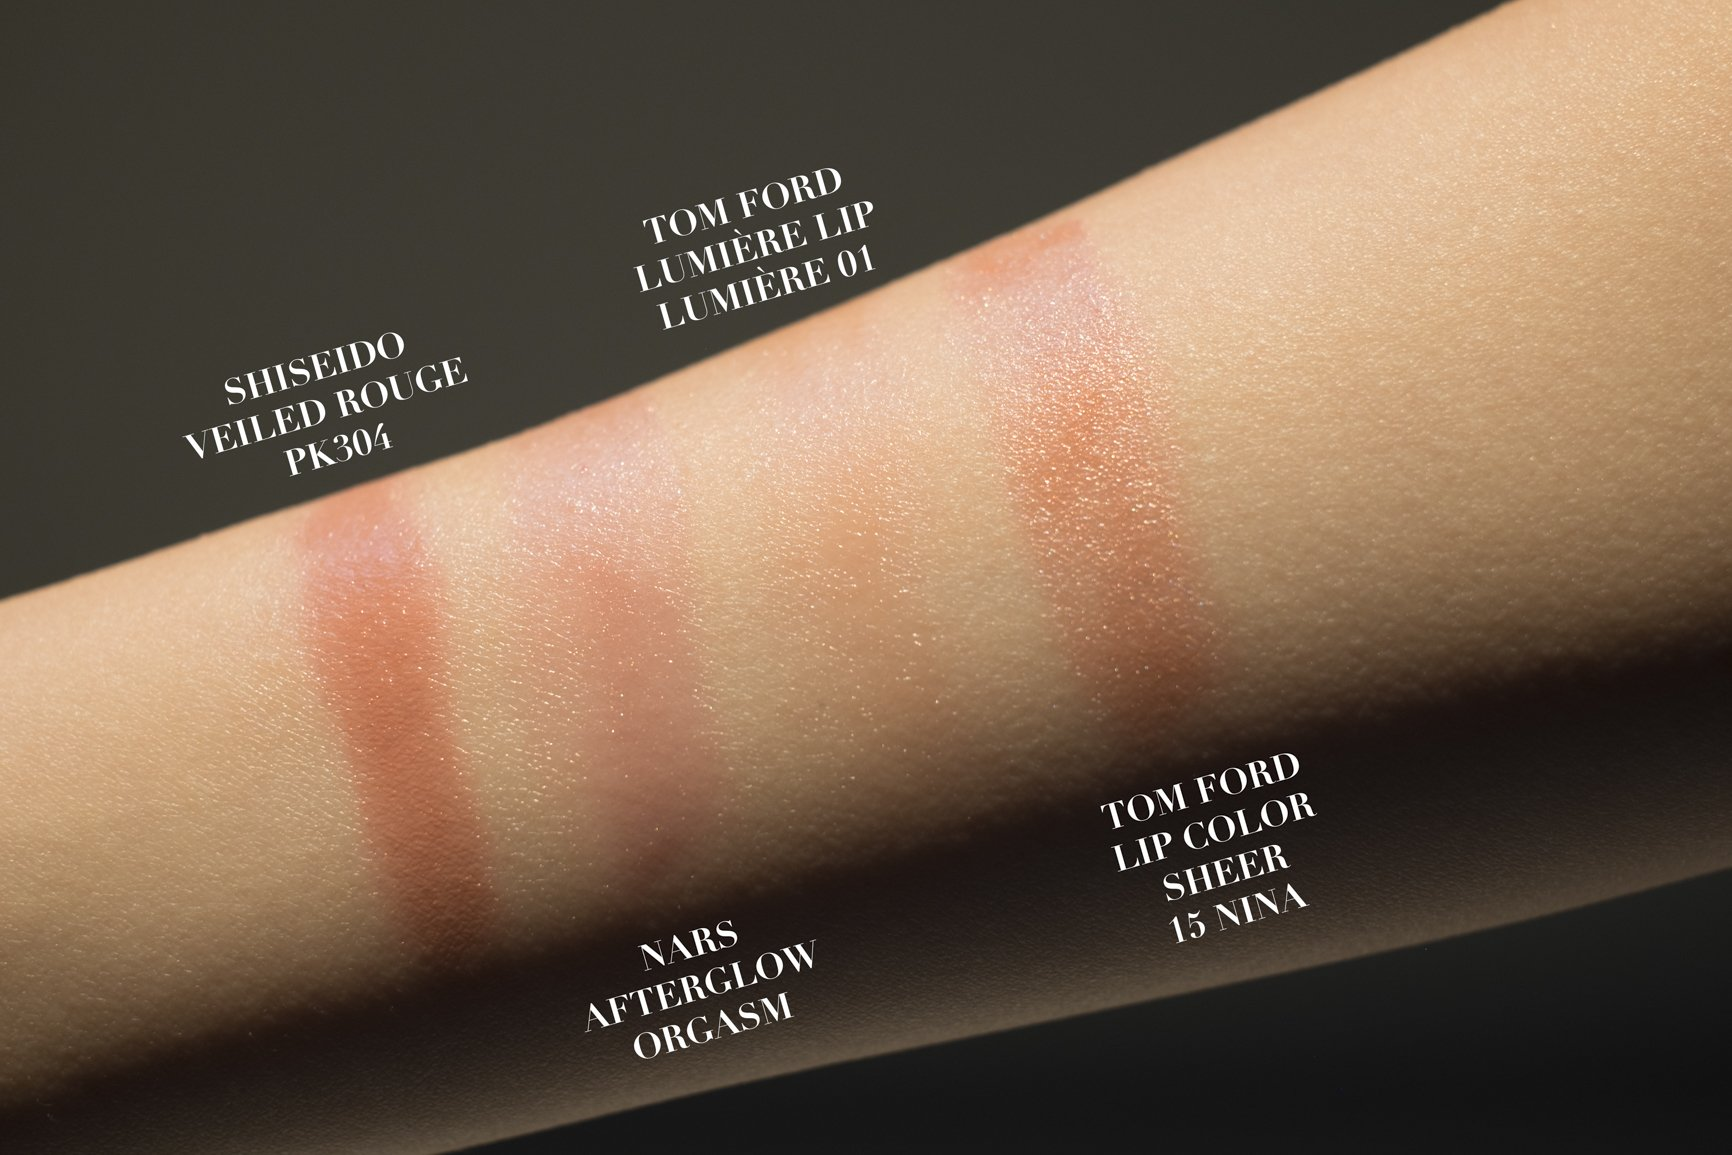 sunkissedblush-Tom-Ford-Lumière-Lip-Orgasm-Afterglow-Lip-Balm-swatches (6 of 13)